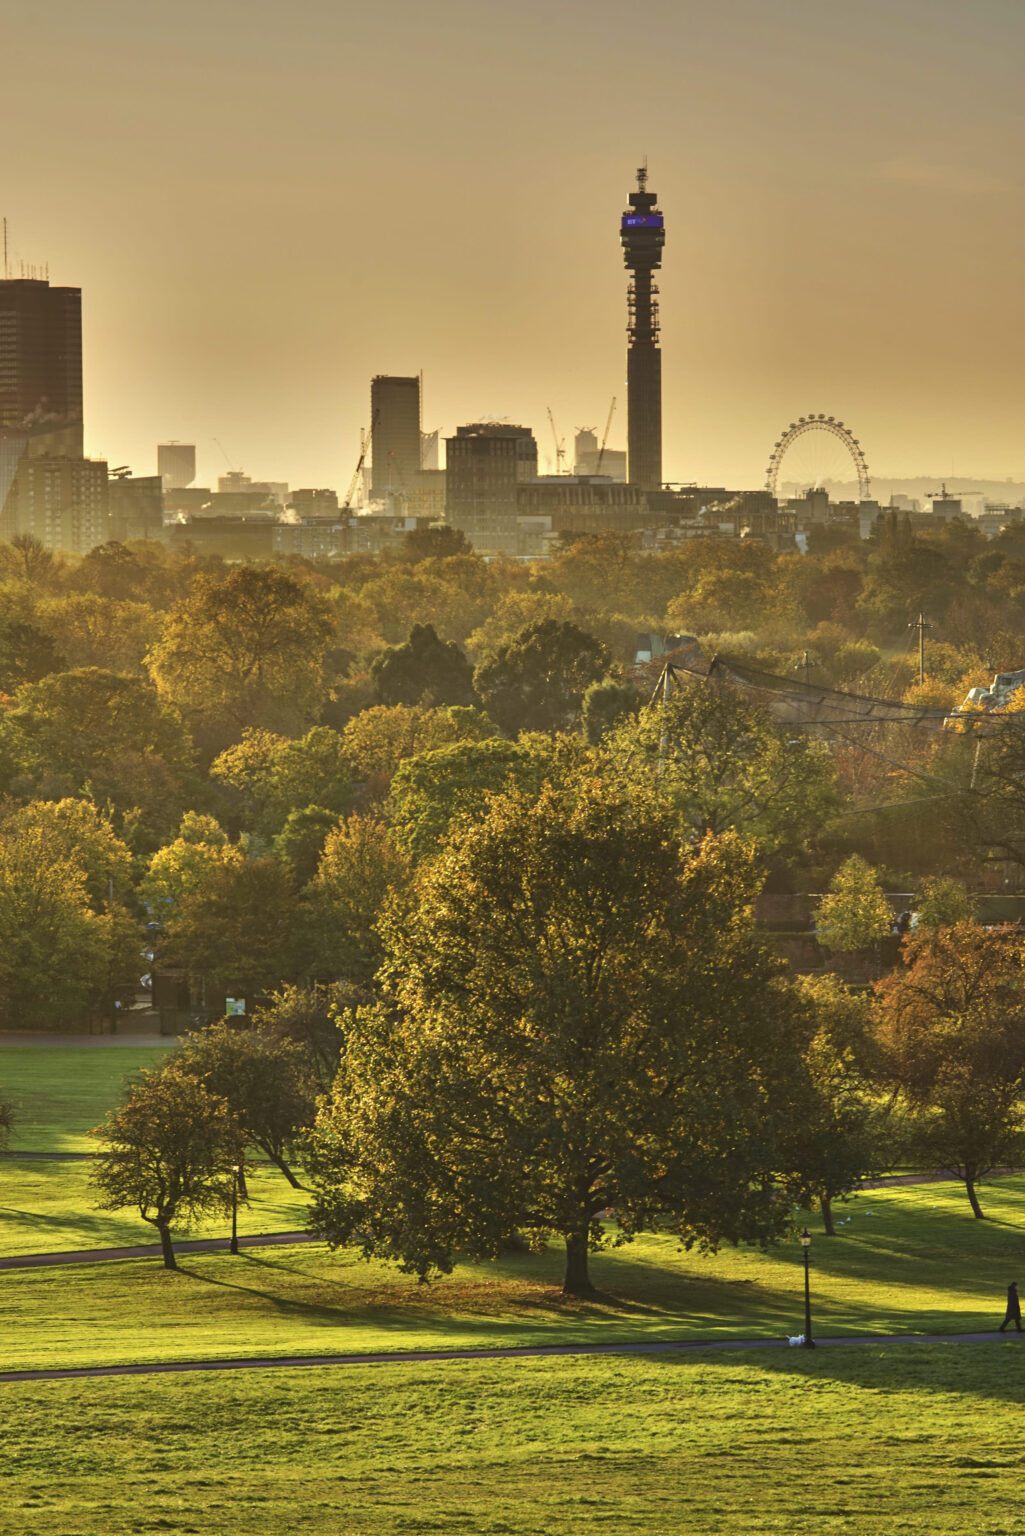 London Eye and BT Tower seen sunrise from Primrose Hill